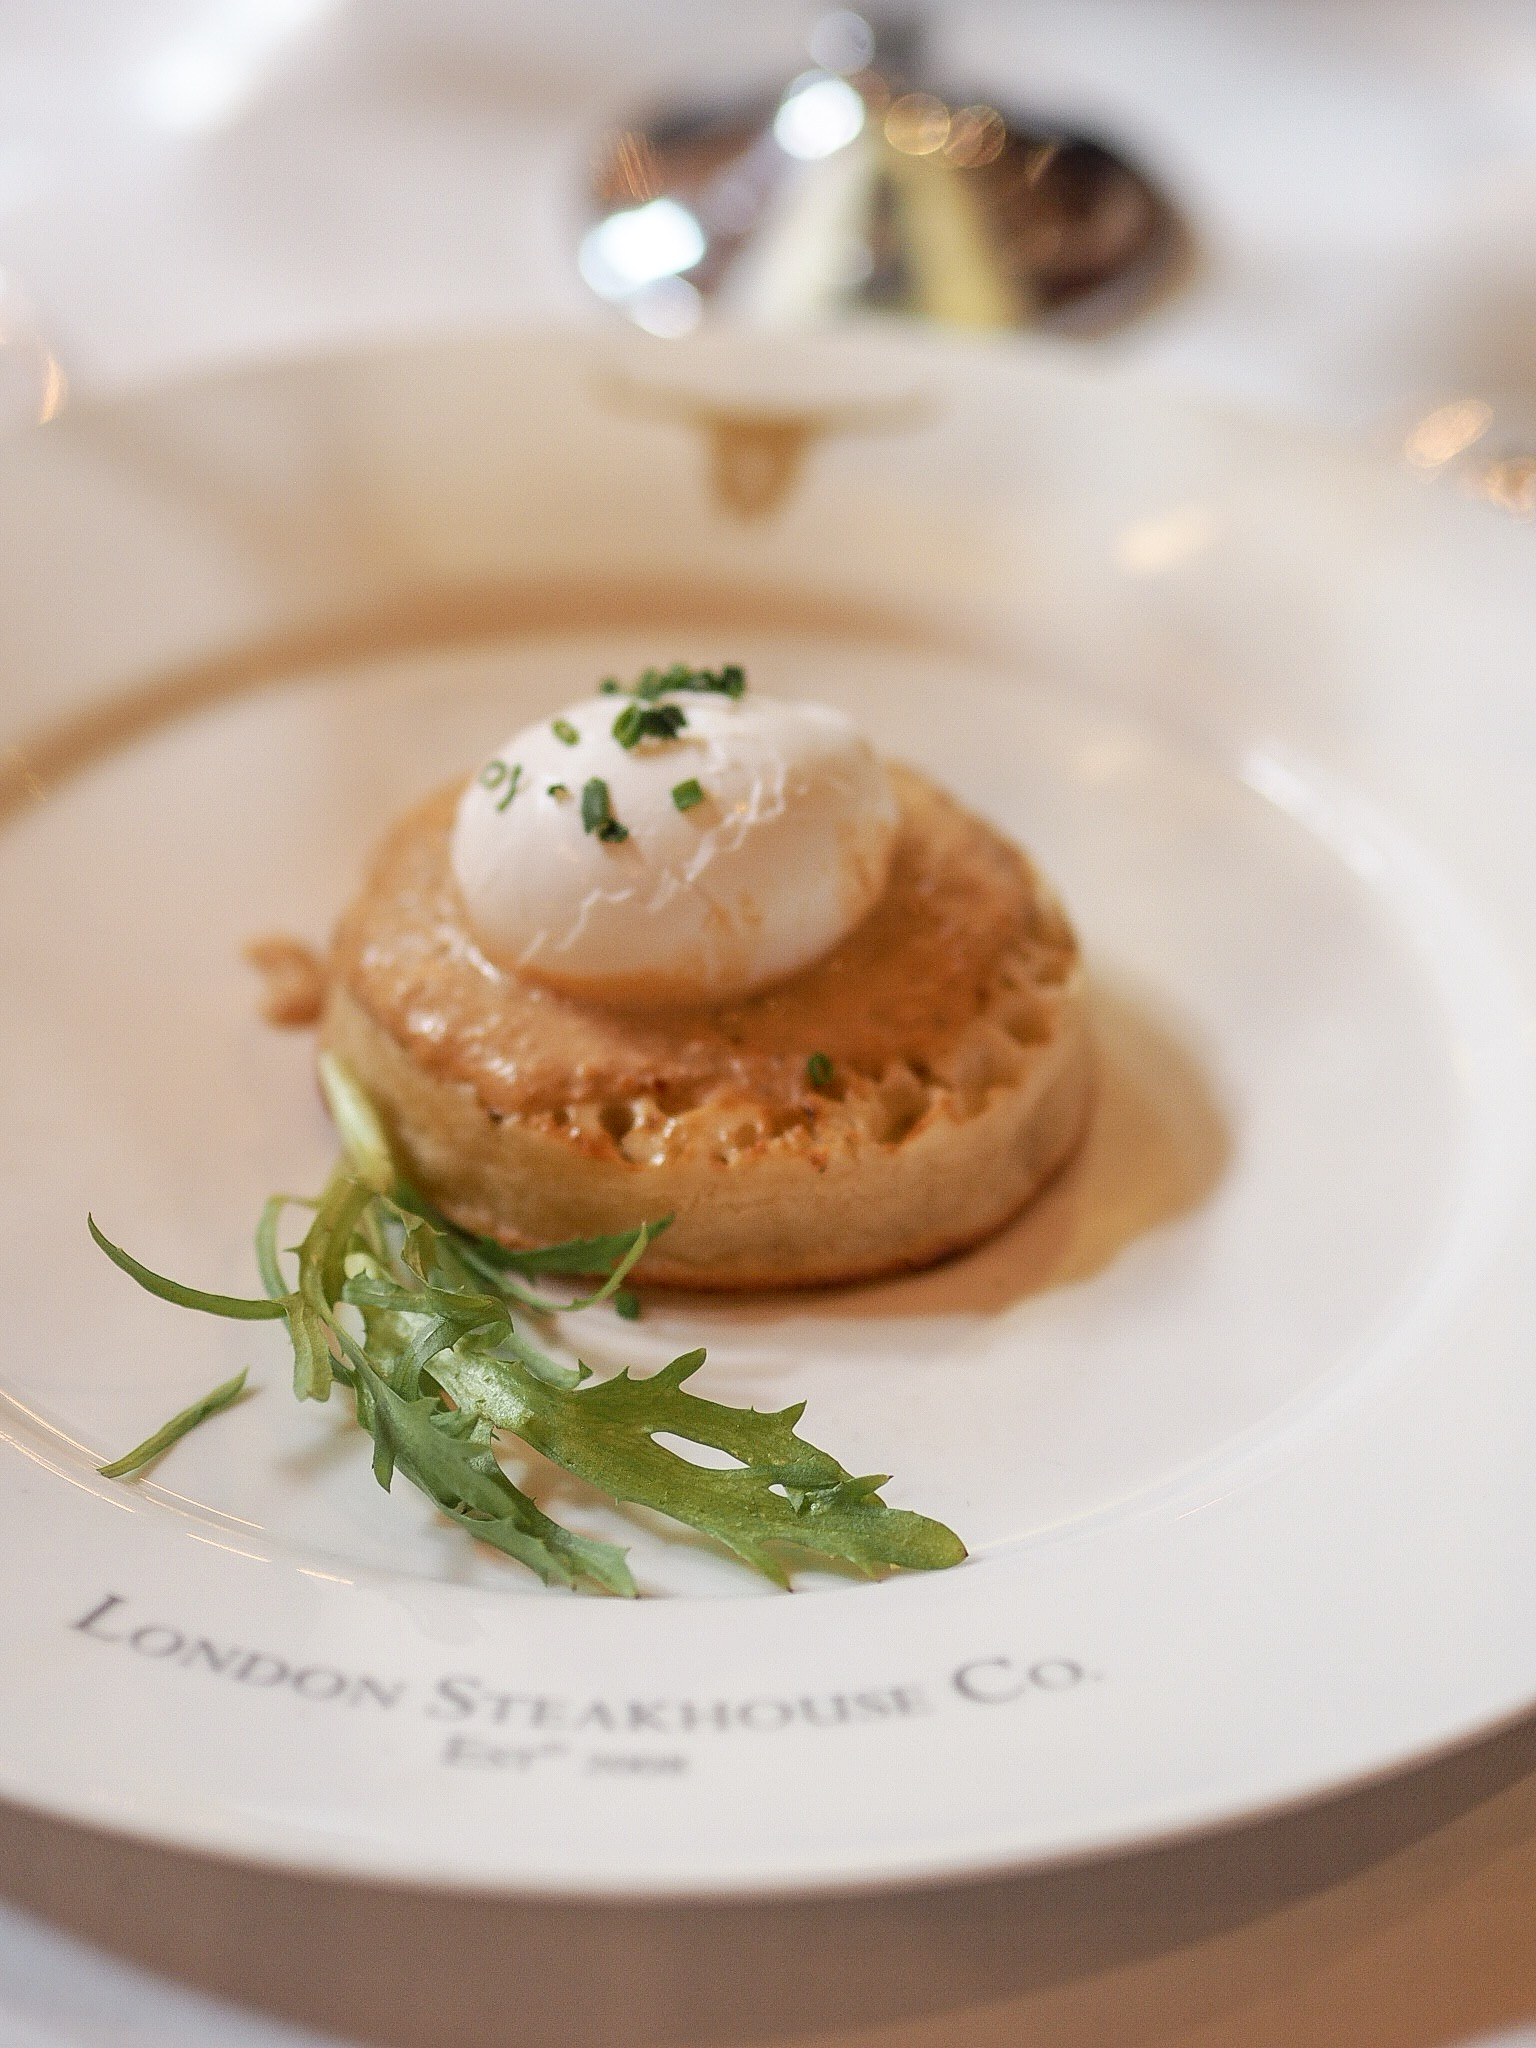 Cornish Crab on Toasted Crumpet london steakhouse